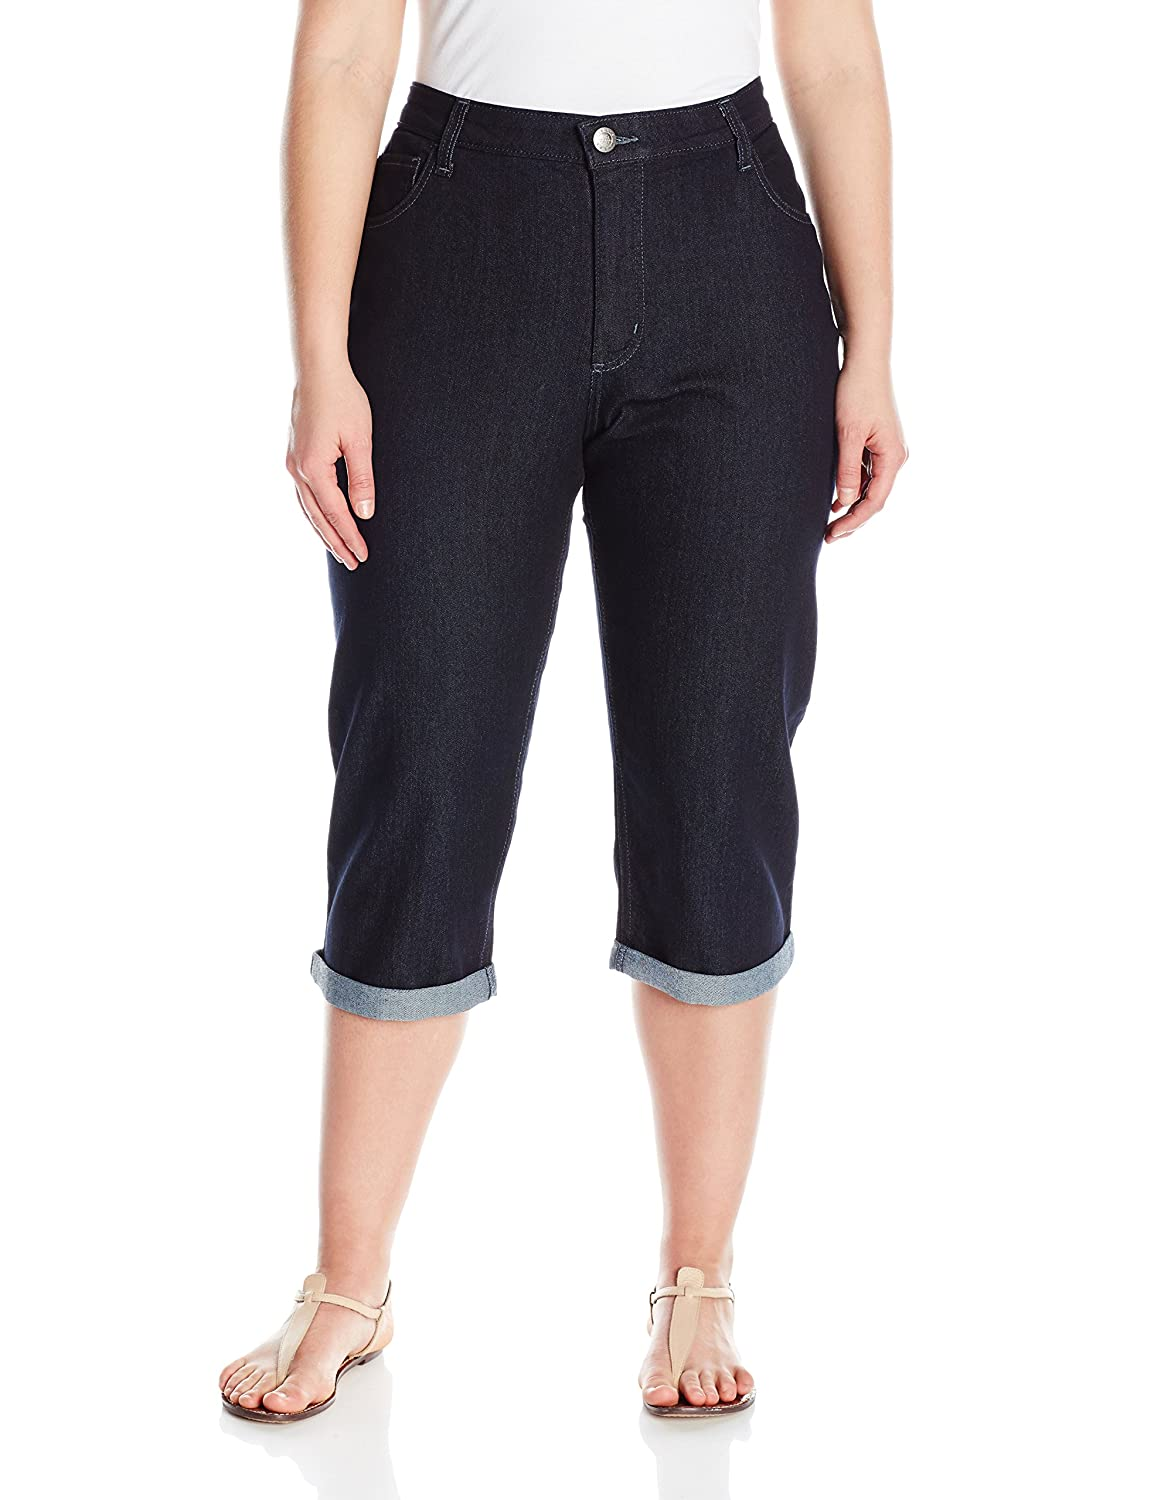 235f8989e06 Riders by Lee Indigo Women s Plus-Size Comfort Waist Cuff Capri